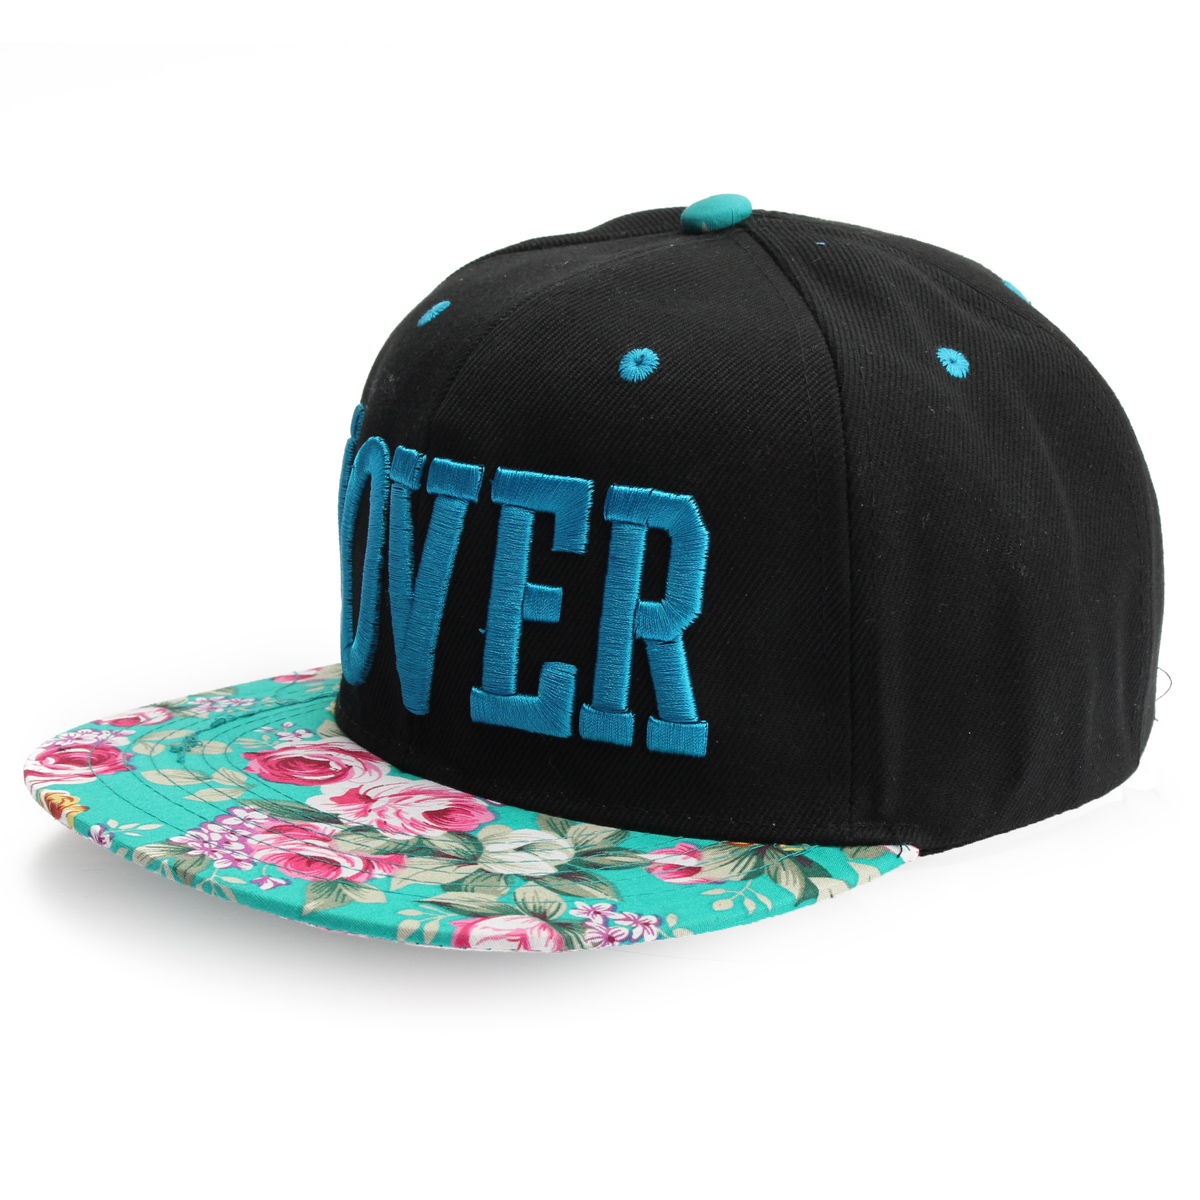 b4f0327e68b new zealand new men women snapback baseball cap hip hop hat floral letter  adjustable canvas ebay